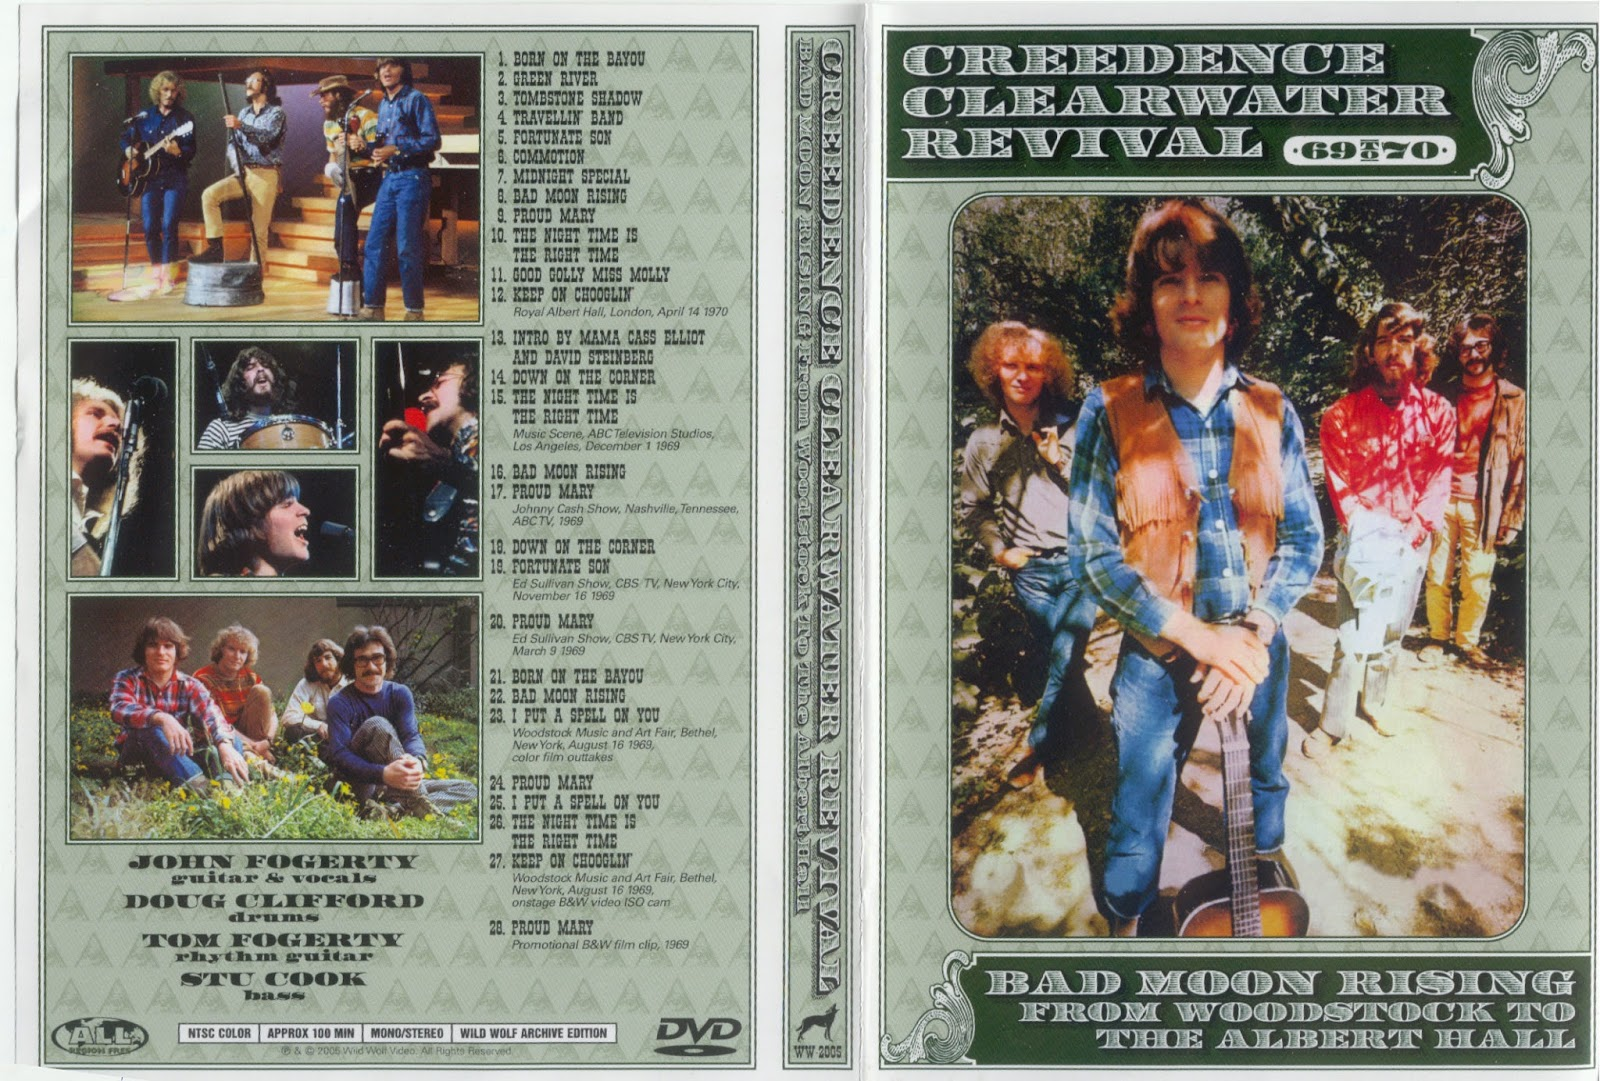 T.U.B.E.: Creedence Clearwater Revival - Video compilation (DVDfull ...